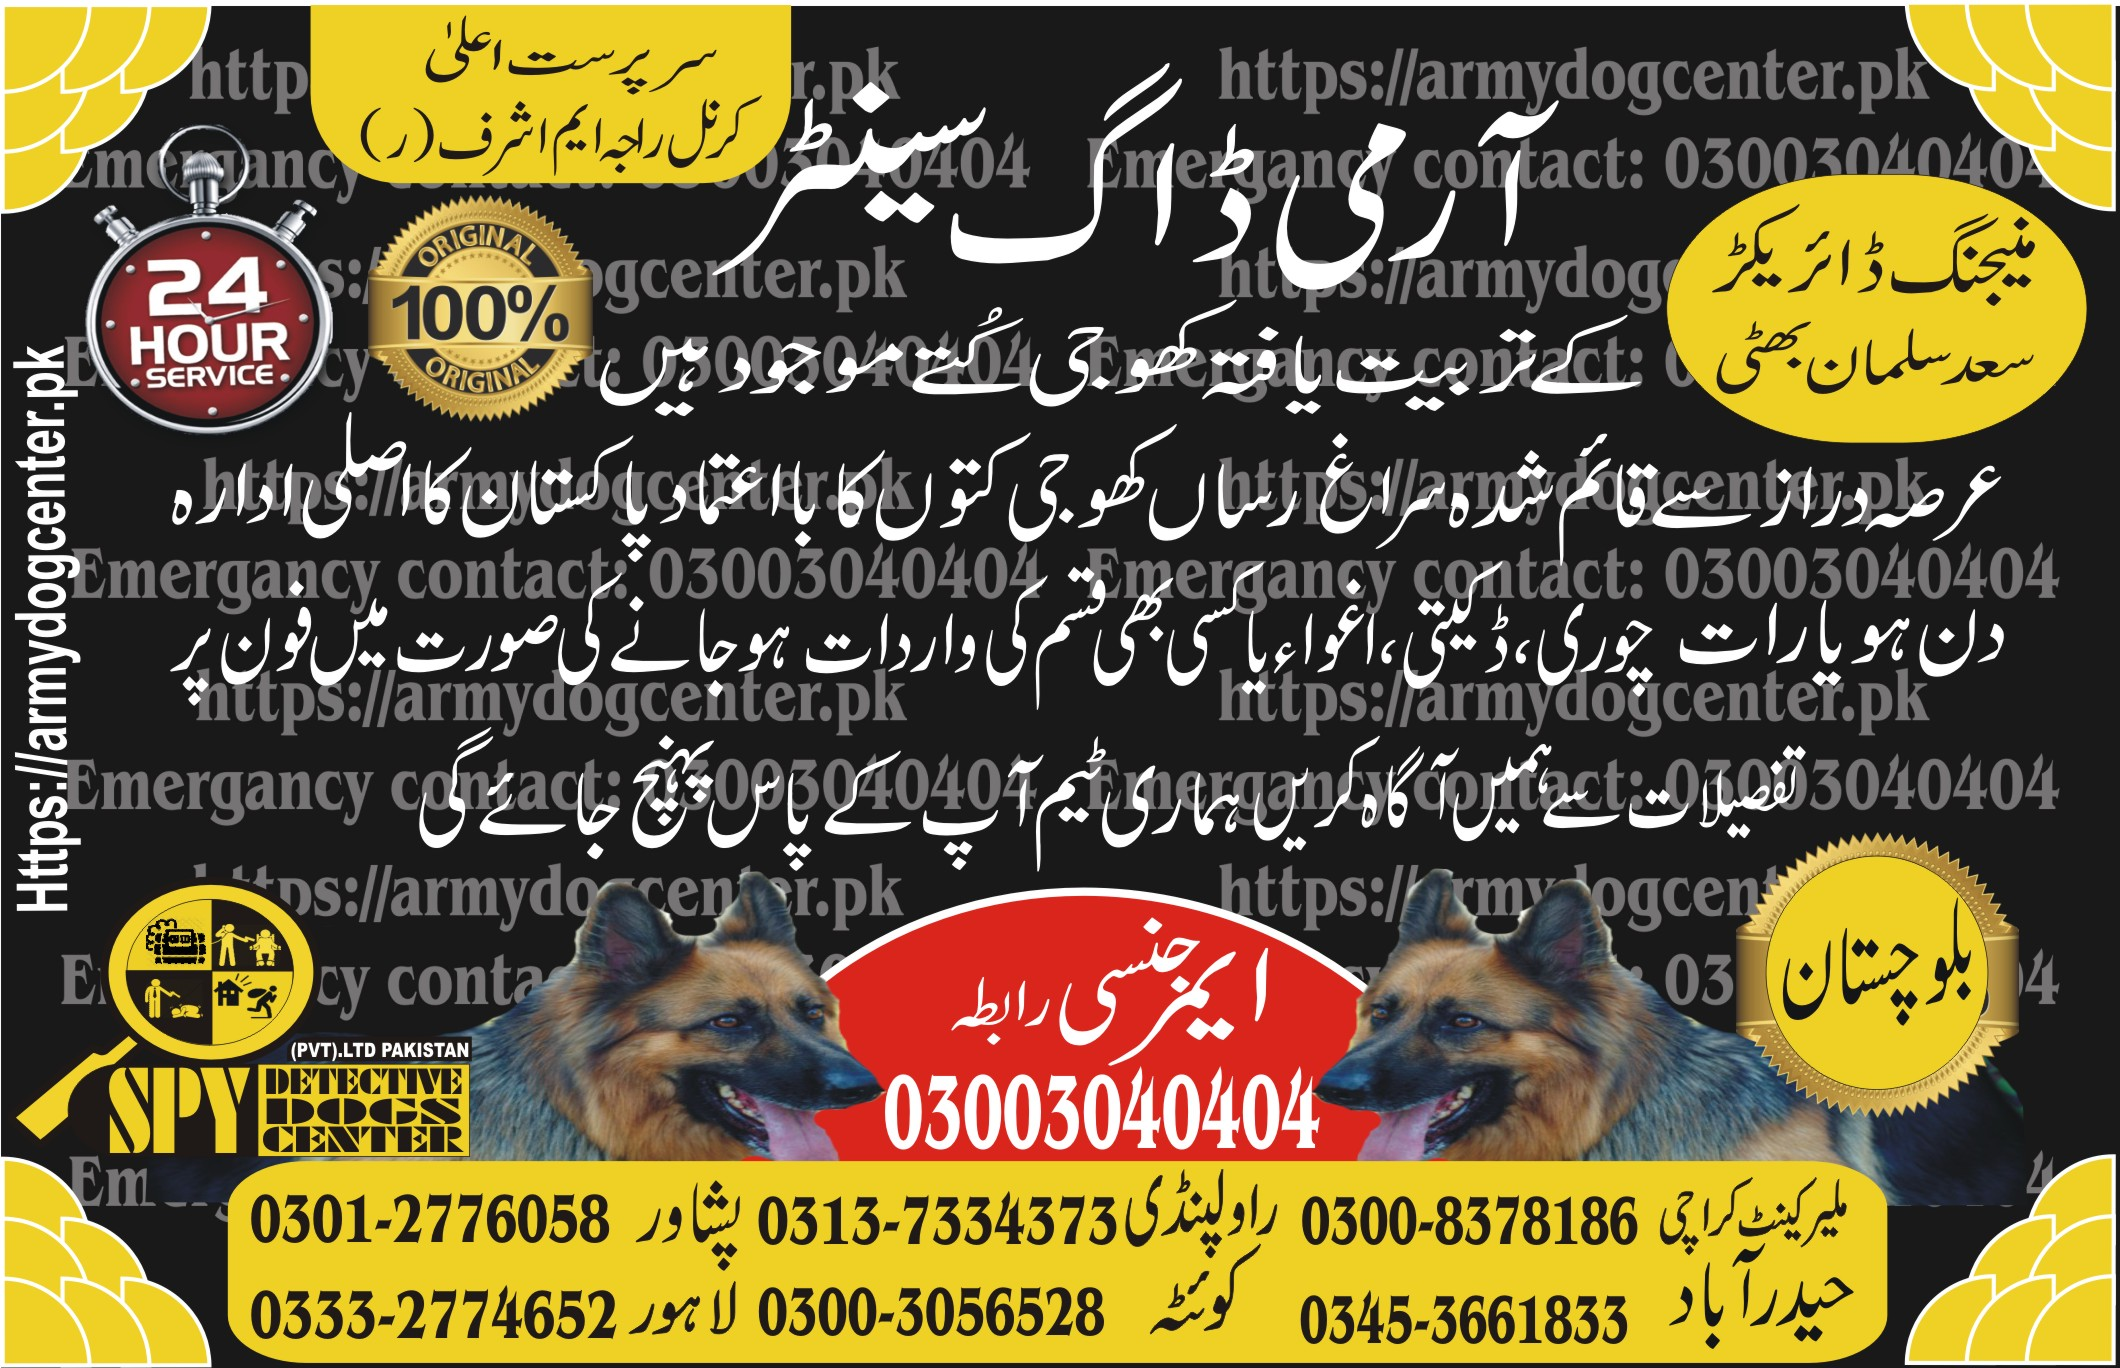 Army Dog Center Balochistan